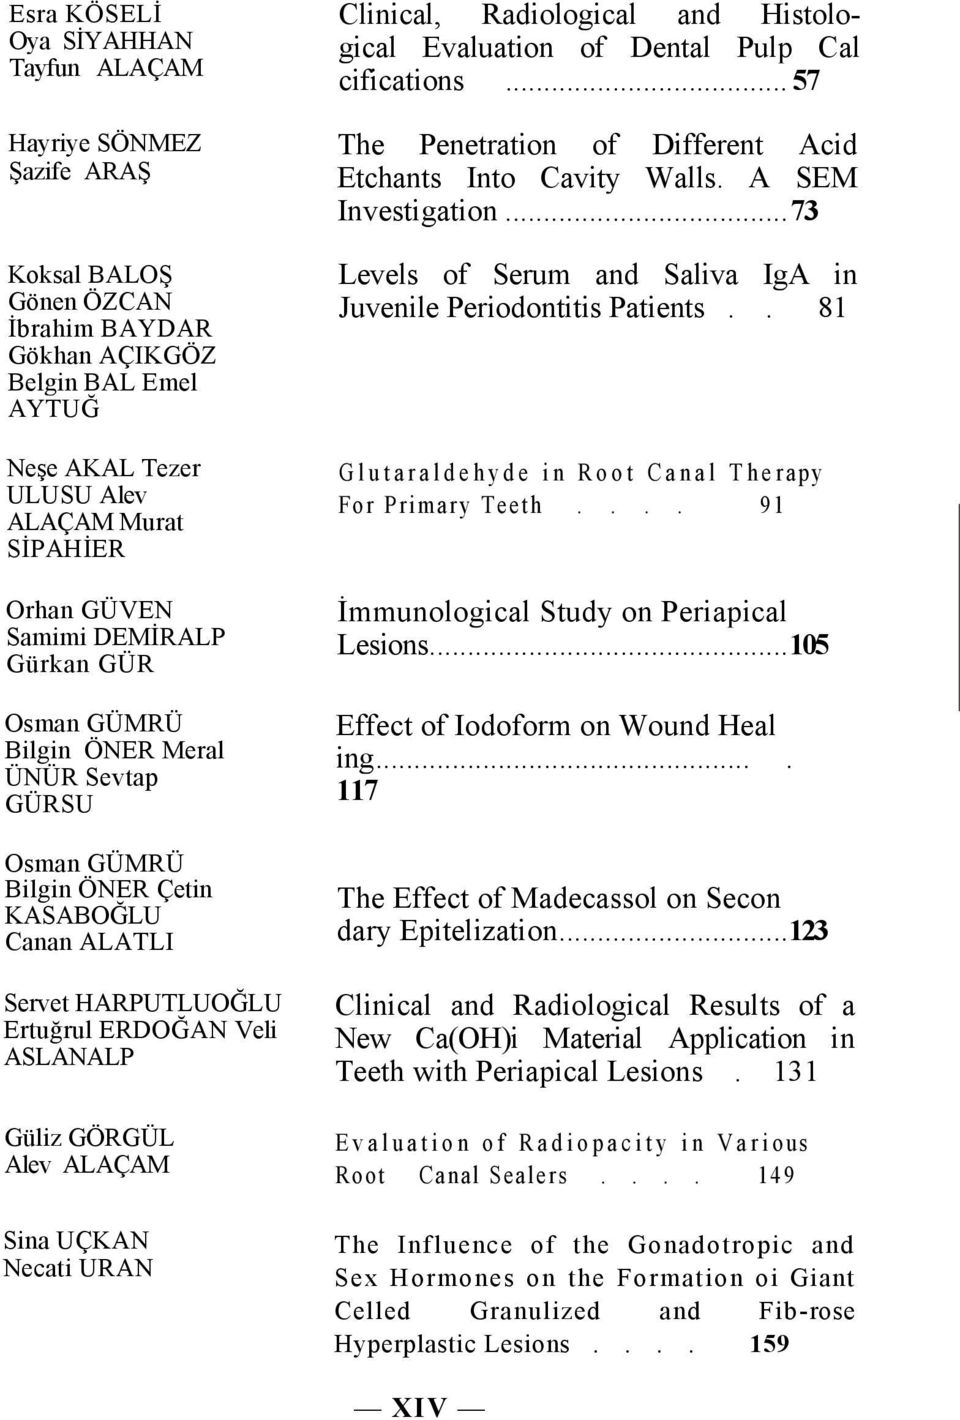 Alev ALAÇAM Sina UÇKAN Necati URAN Clinical, Radiological and Histological Evaluation of Dental Pulp Cal cifications... 57 The Penetration of Different Acid Etchants Into Cavity Walls.